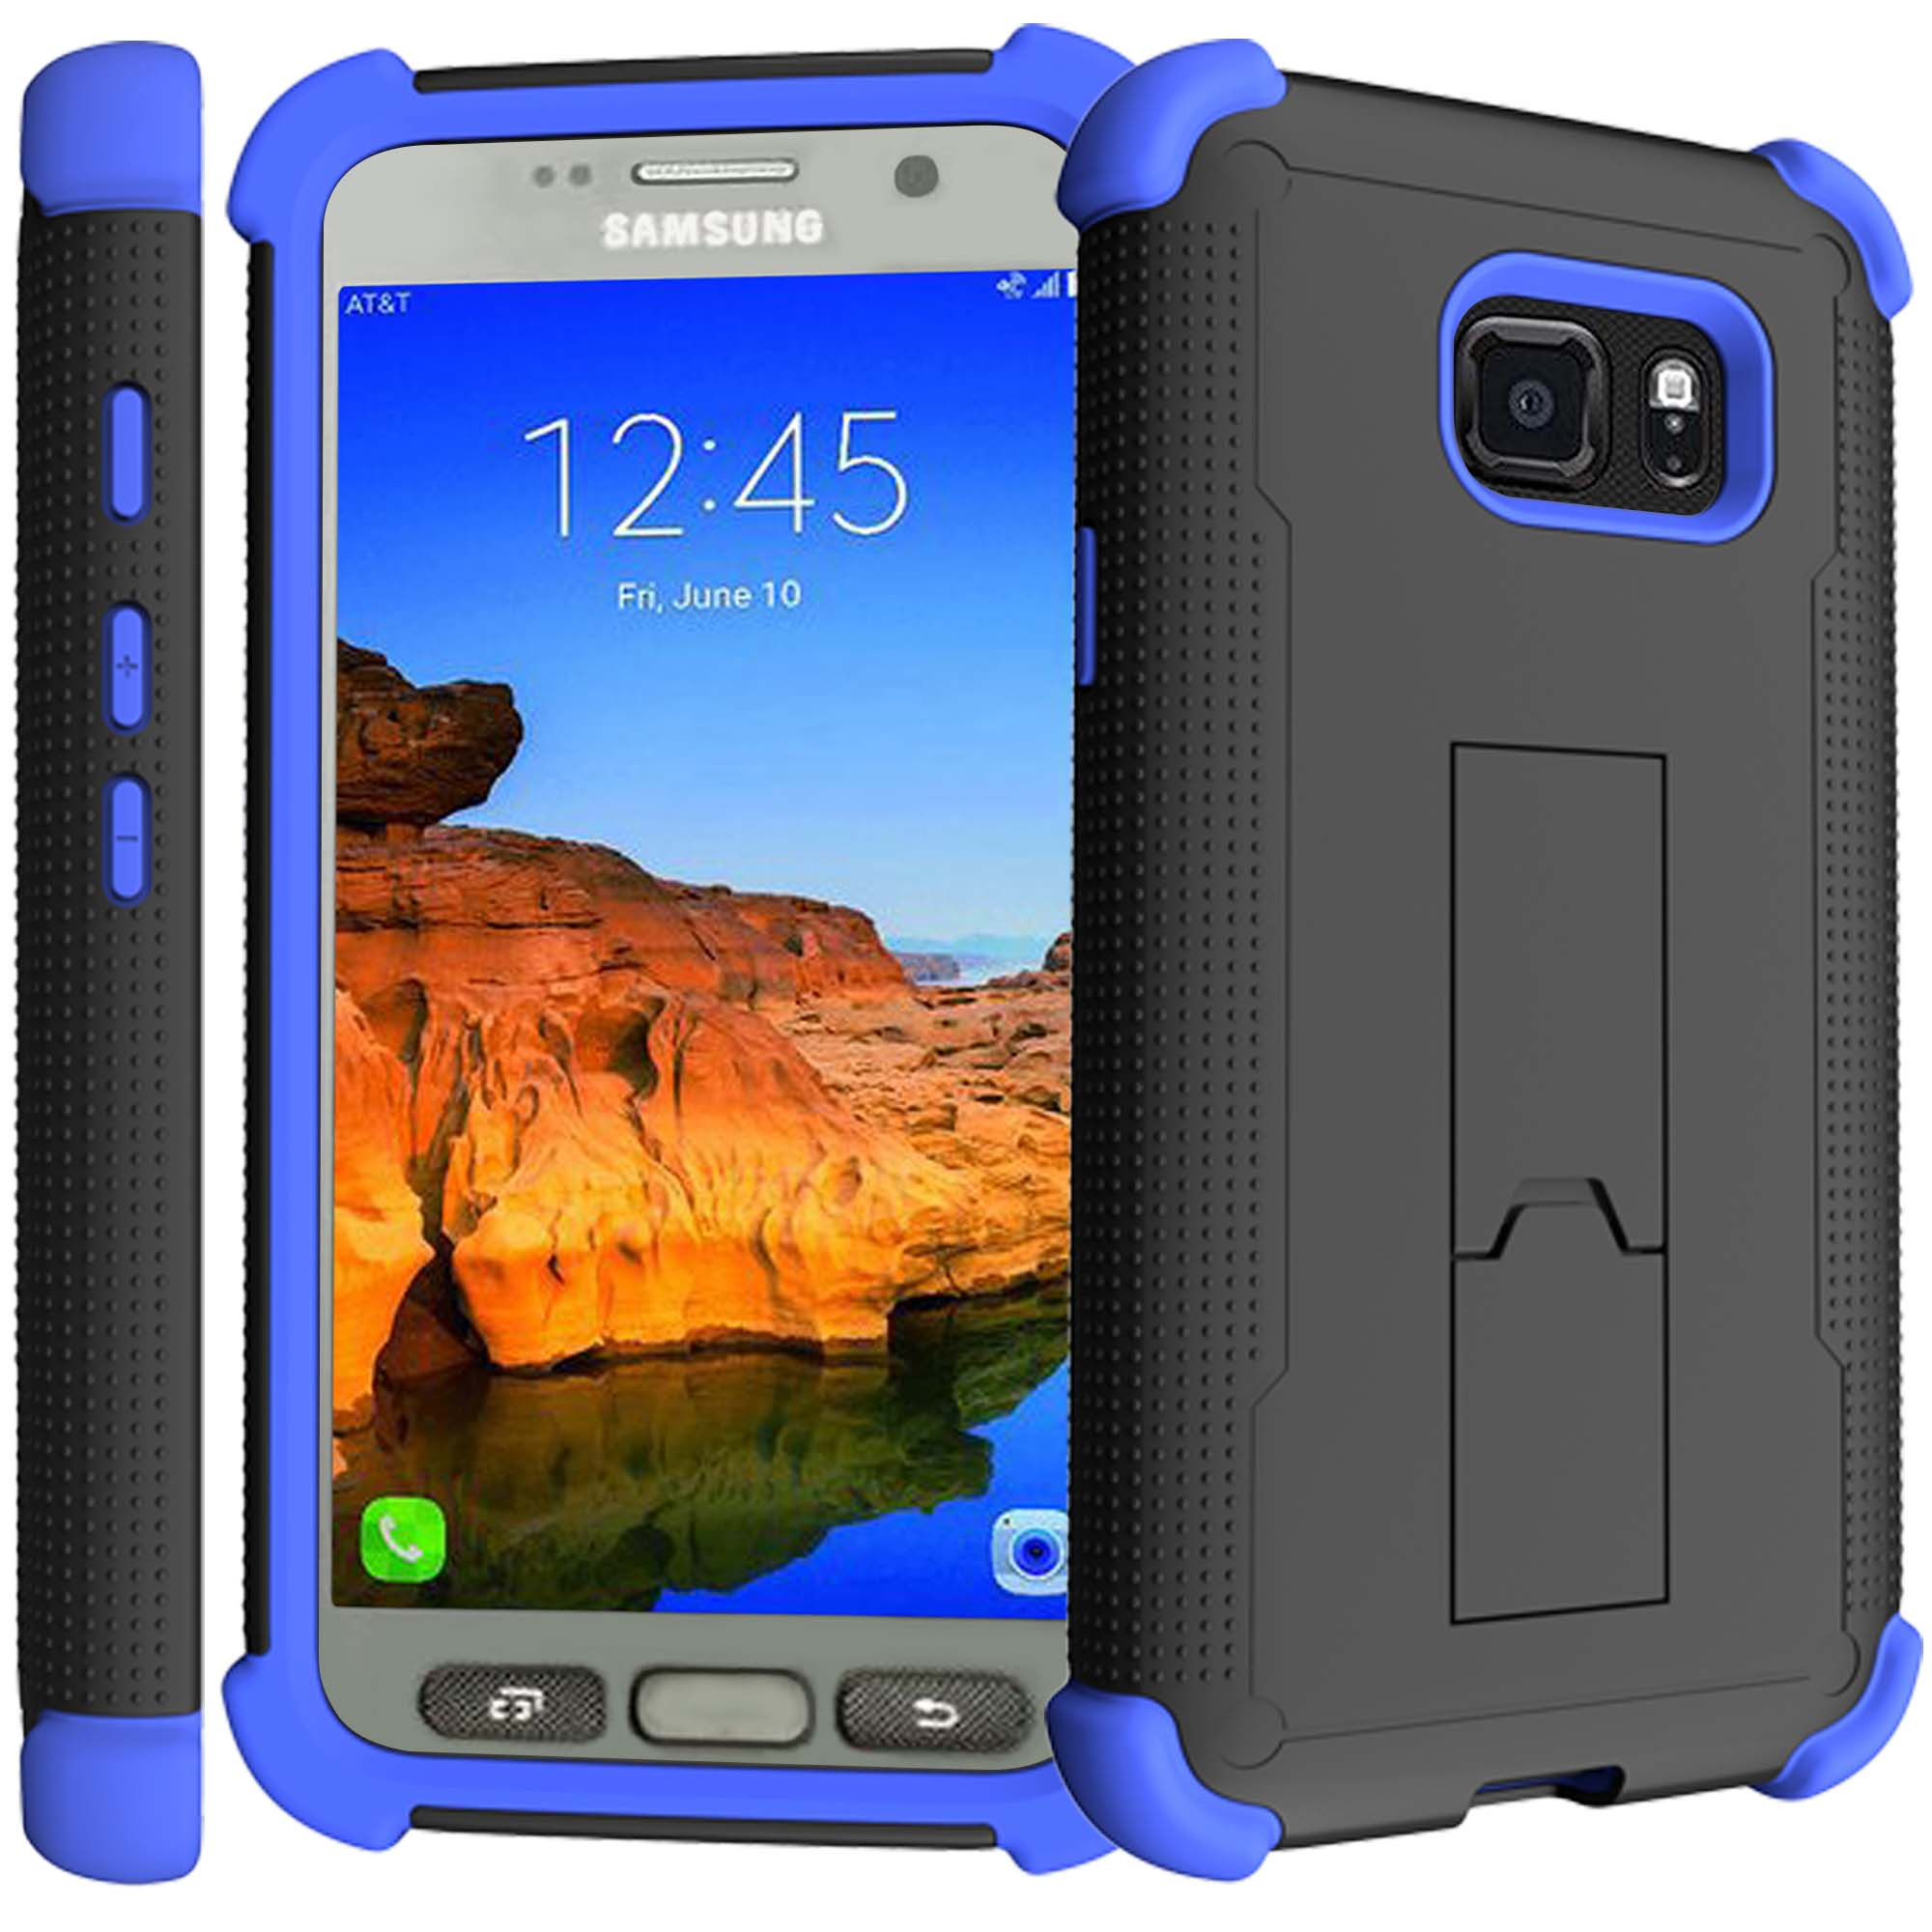 Samsung Galaxy S7 Case | S7 Blue Silicone Case [ShockWave Armor] High Impact Kickstand Case - Blue